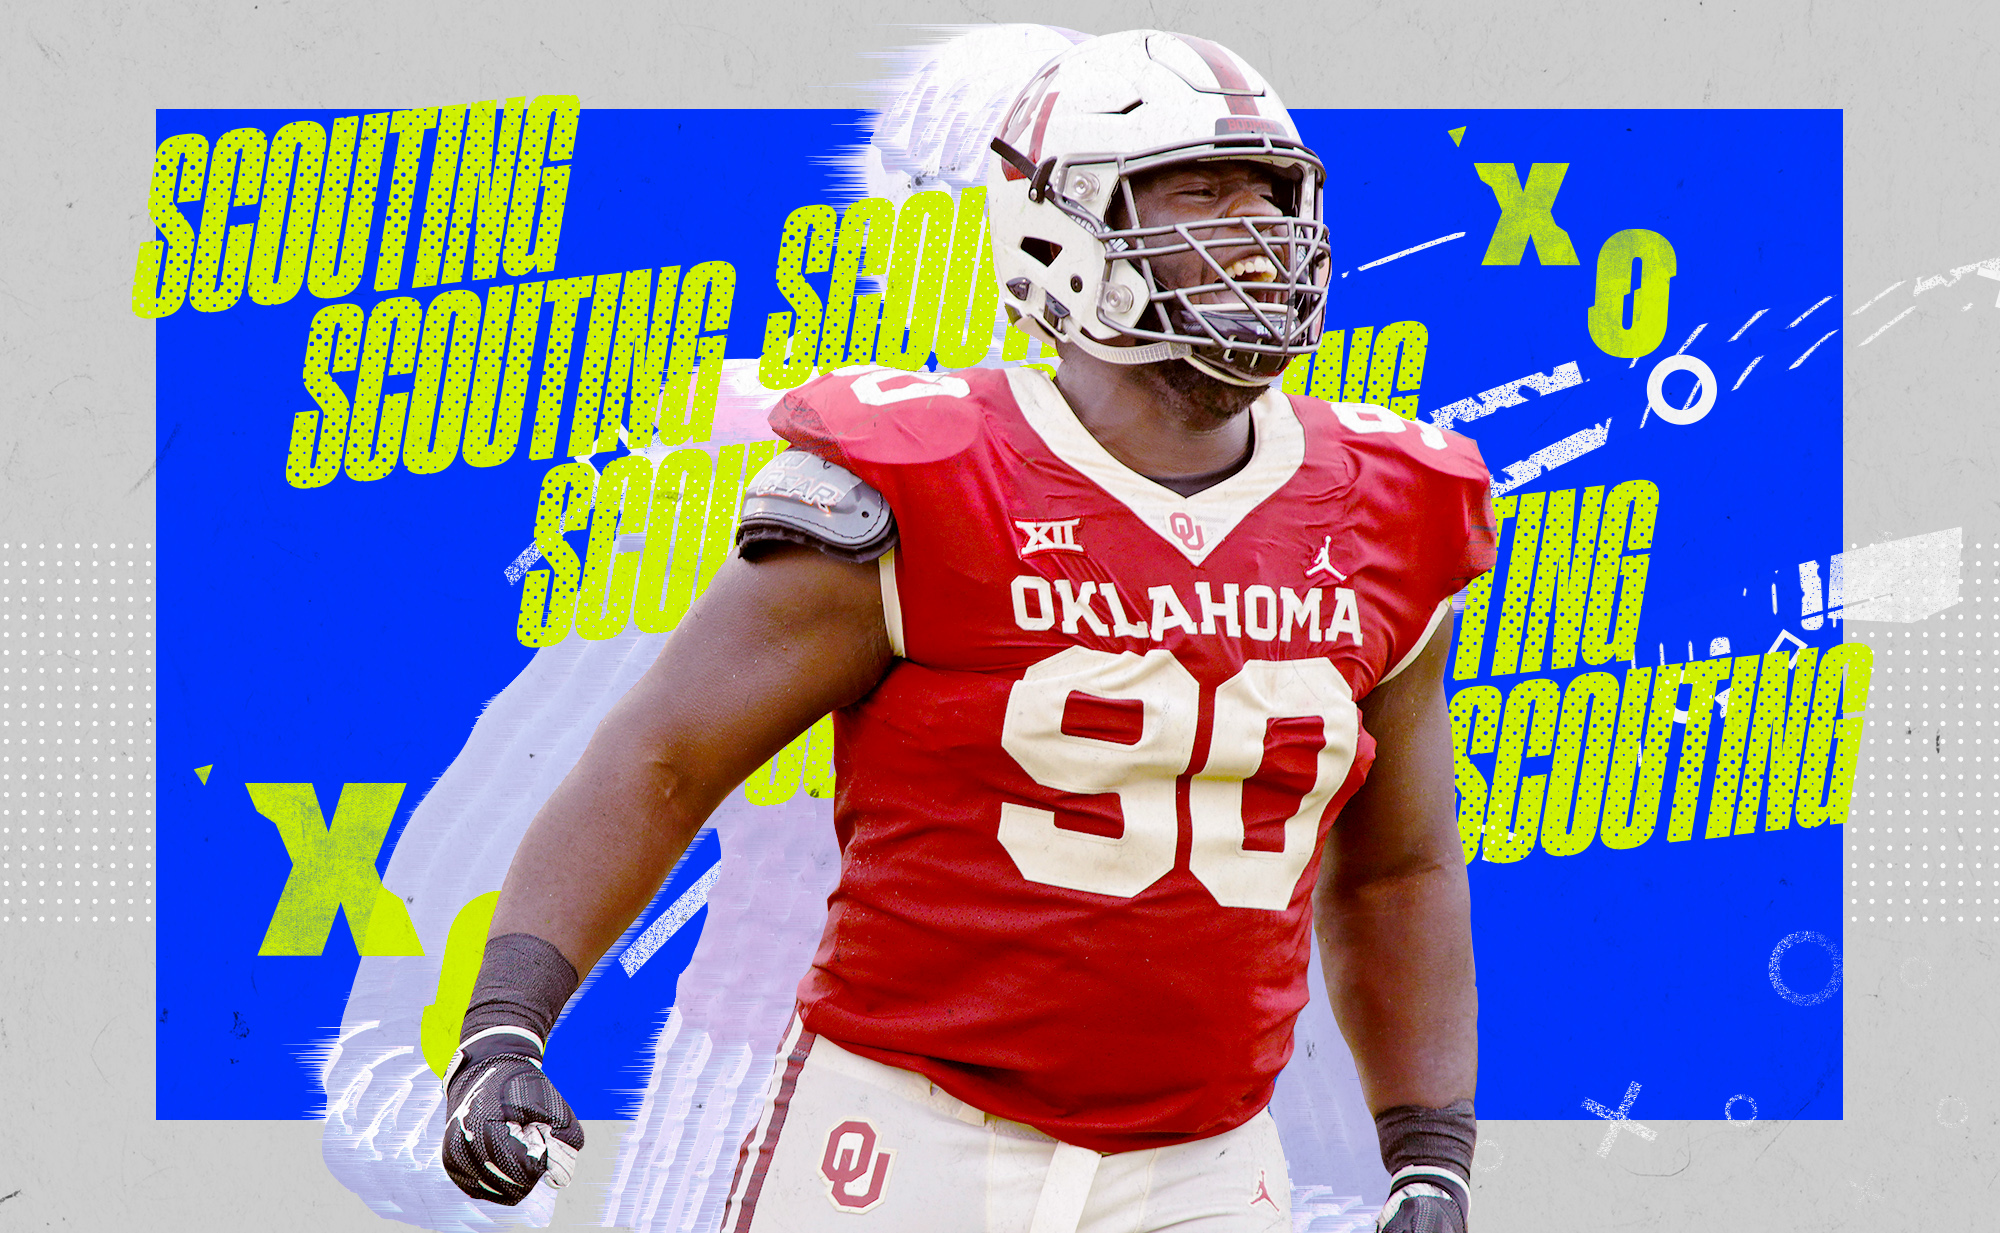 """An illustration of NFL DL prospect Neville Gallimore at Oklahoma, superimposed on a blue and white background with """"SCOUTING"""" and """"X""""s and """"O""""s in neon yellow lettering"""